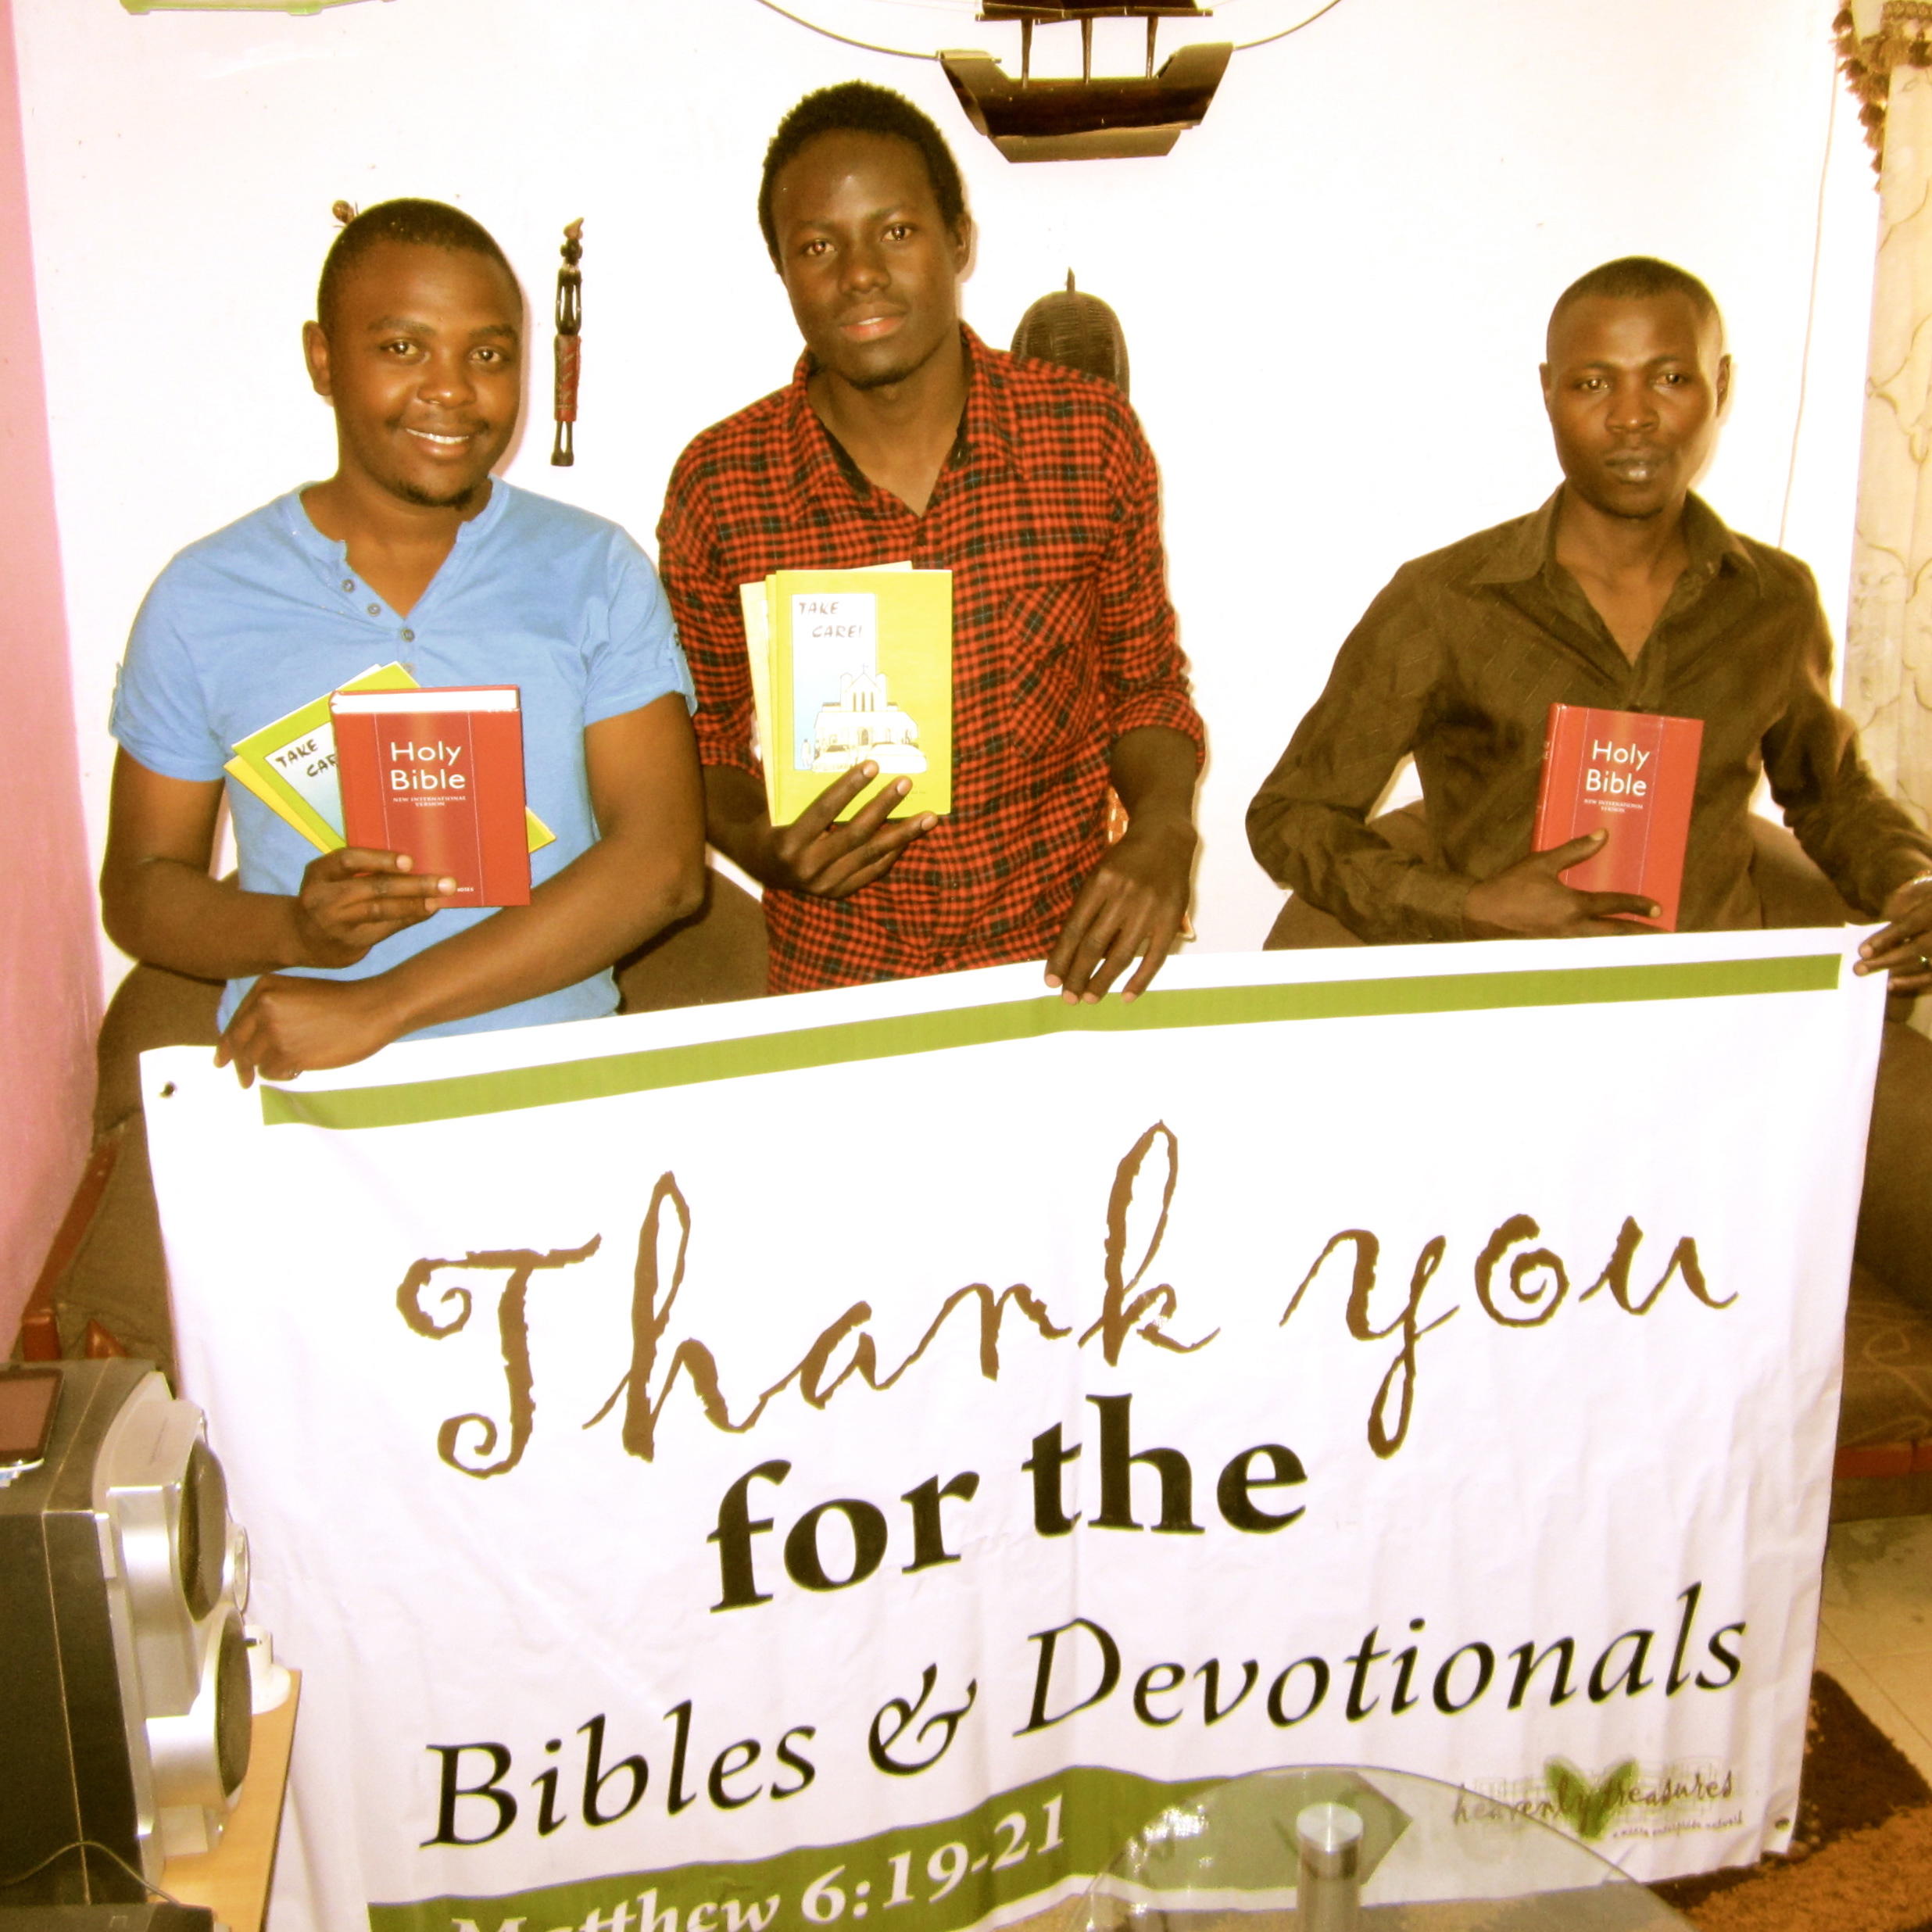 (Top picture: Through the generosity of one of our donors, Heavenly Treasures Kenya was able to provide devotionals to our artisans in Kenya. Pictured above is the Pamoja Youth Crafts staff.)